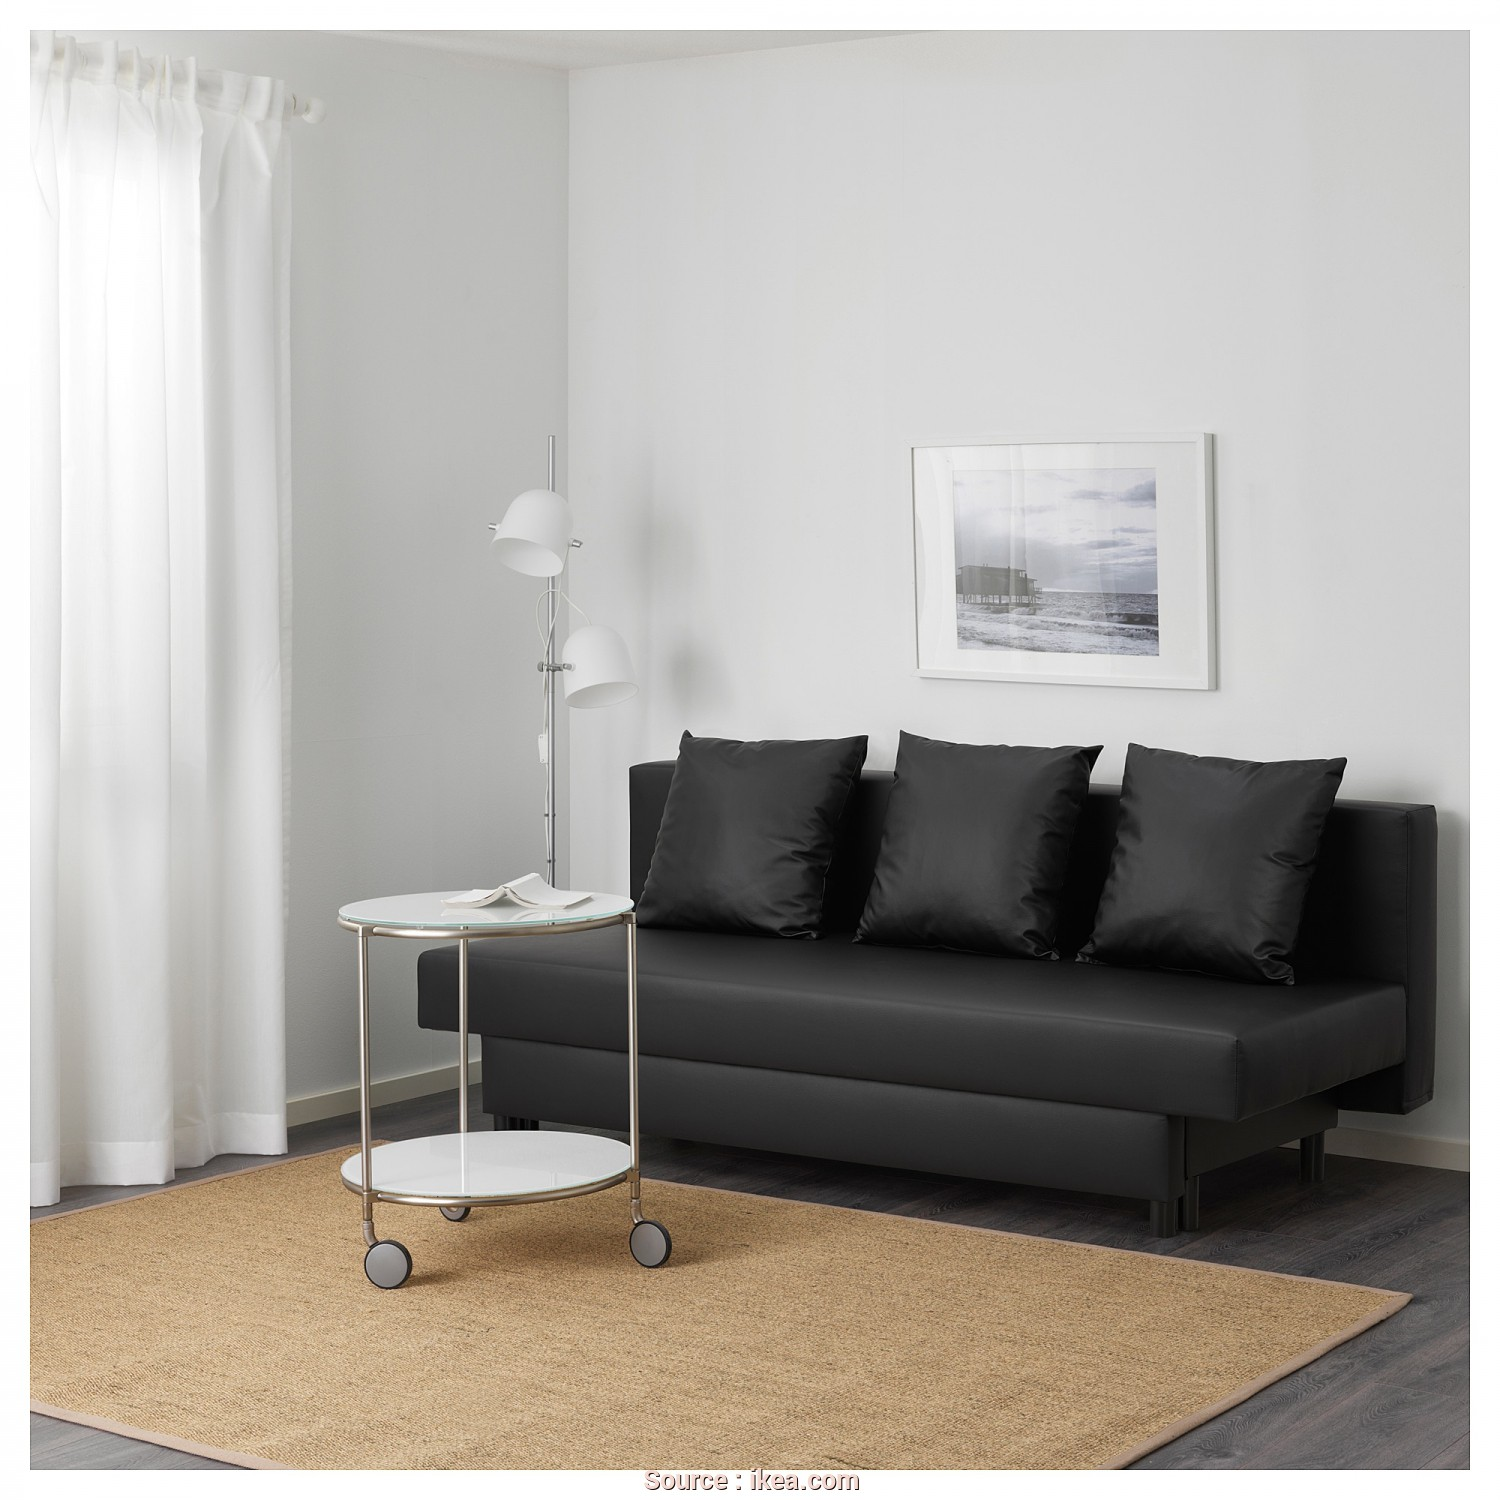 Ikea Asarum Sofa Review, Delizioso IKEA ASARUM 3-Seat Sofa-Bed Readily Converts Into A Bed